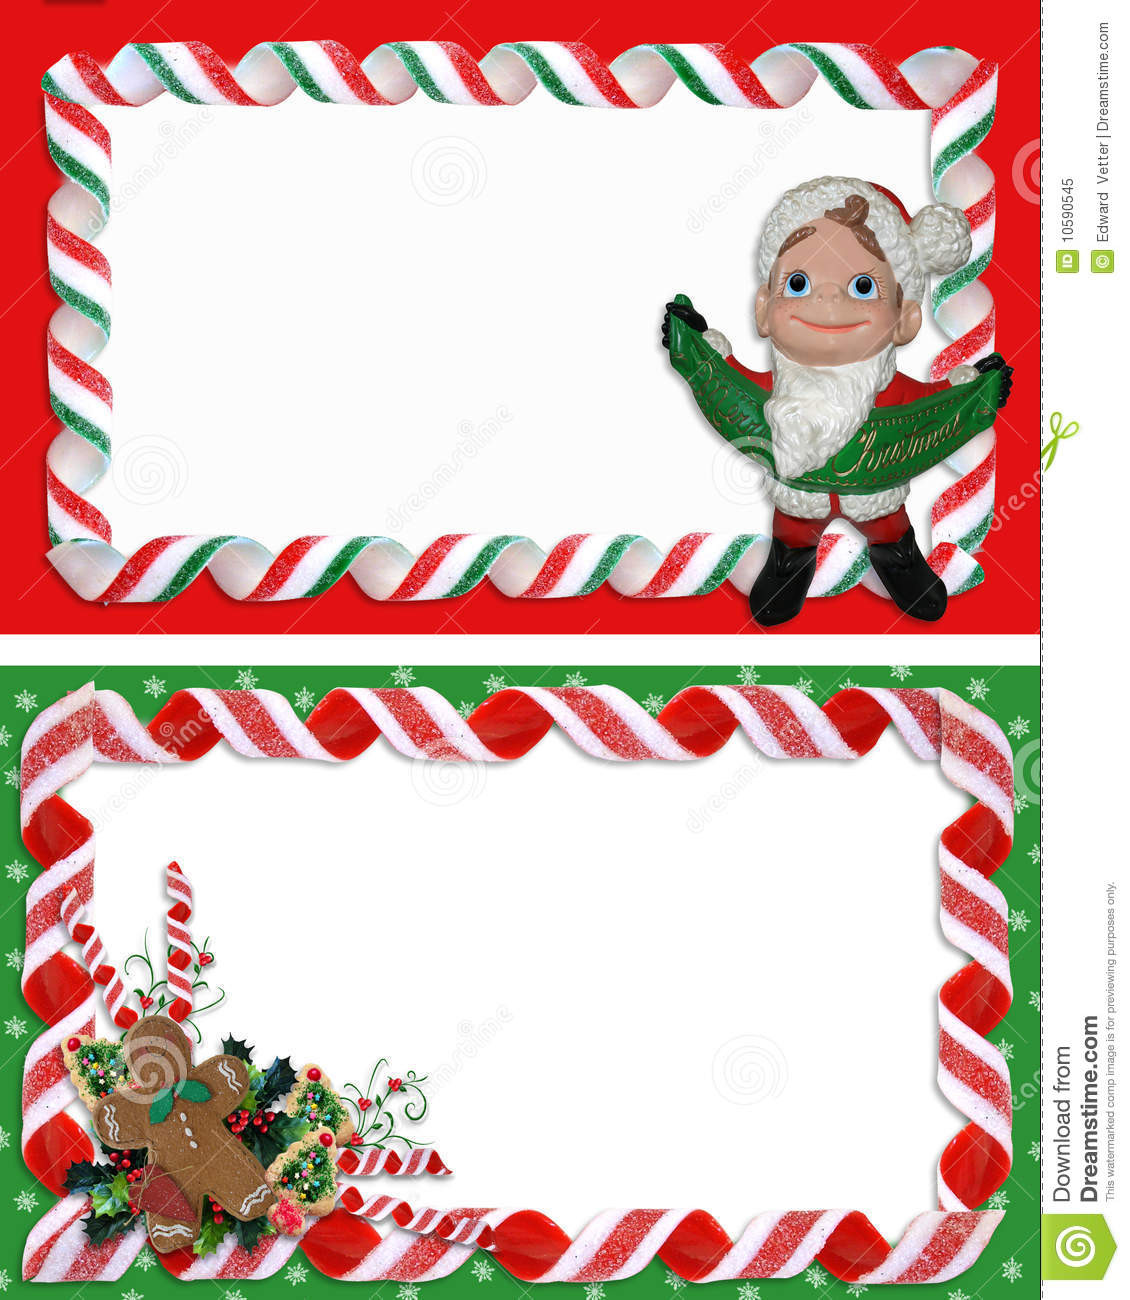 Christmas Candy Border  Christmas Label Borders Ribbon Candy Stock Illustration